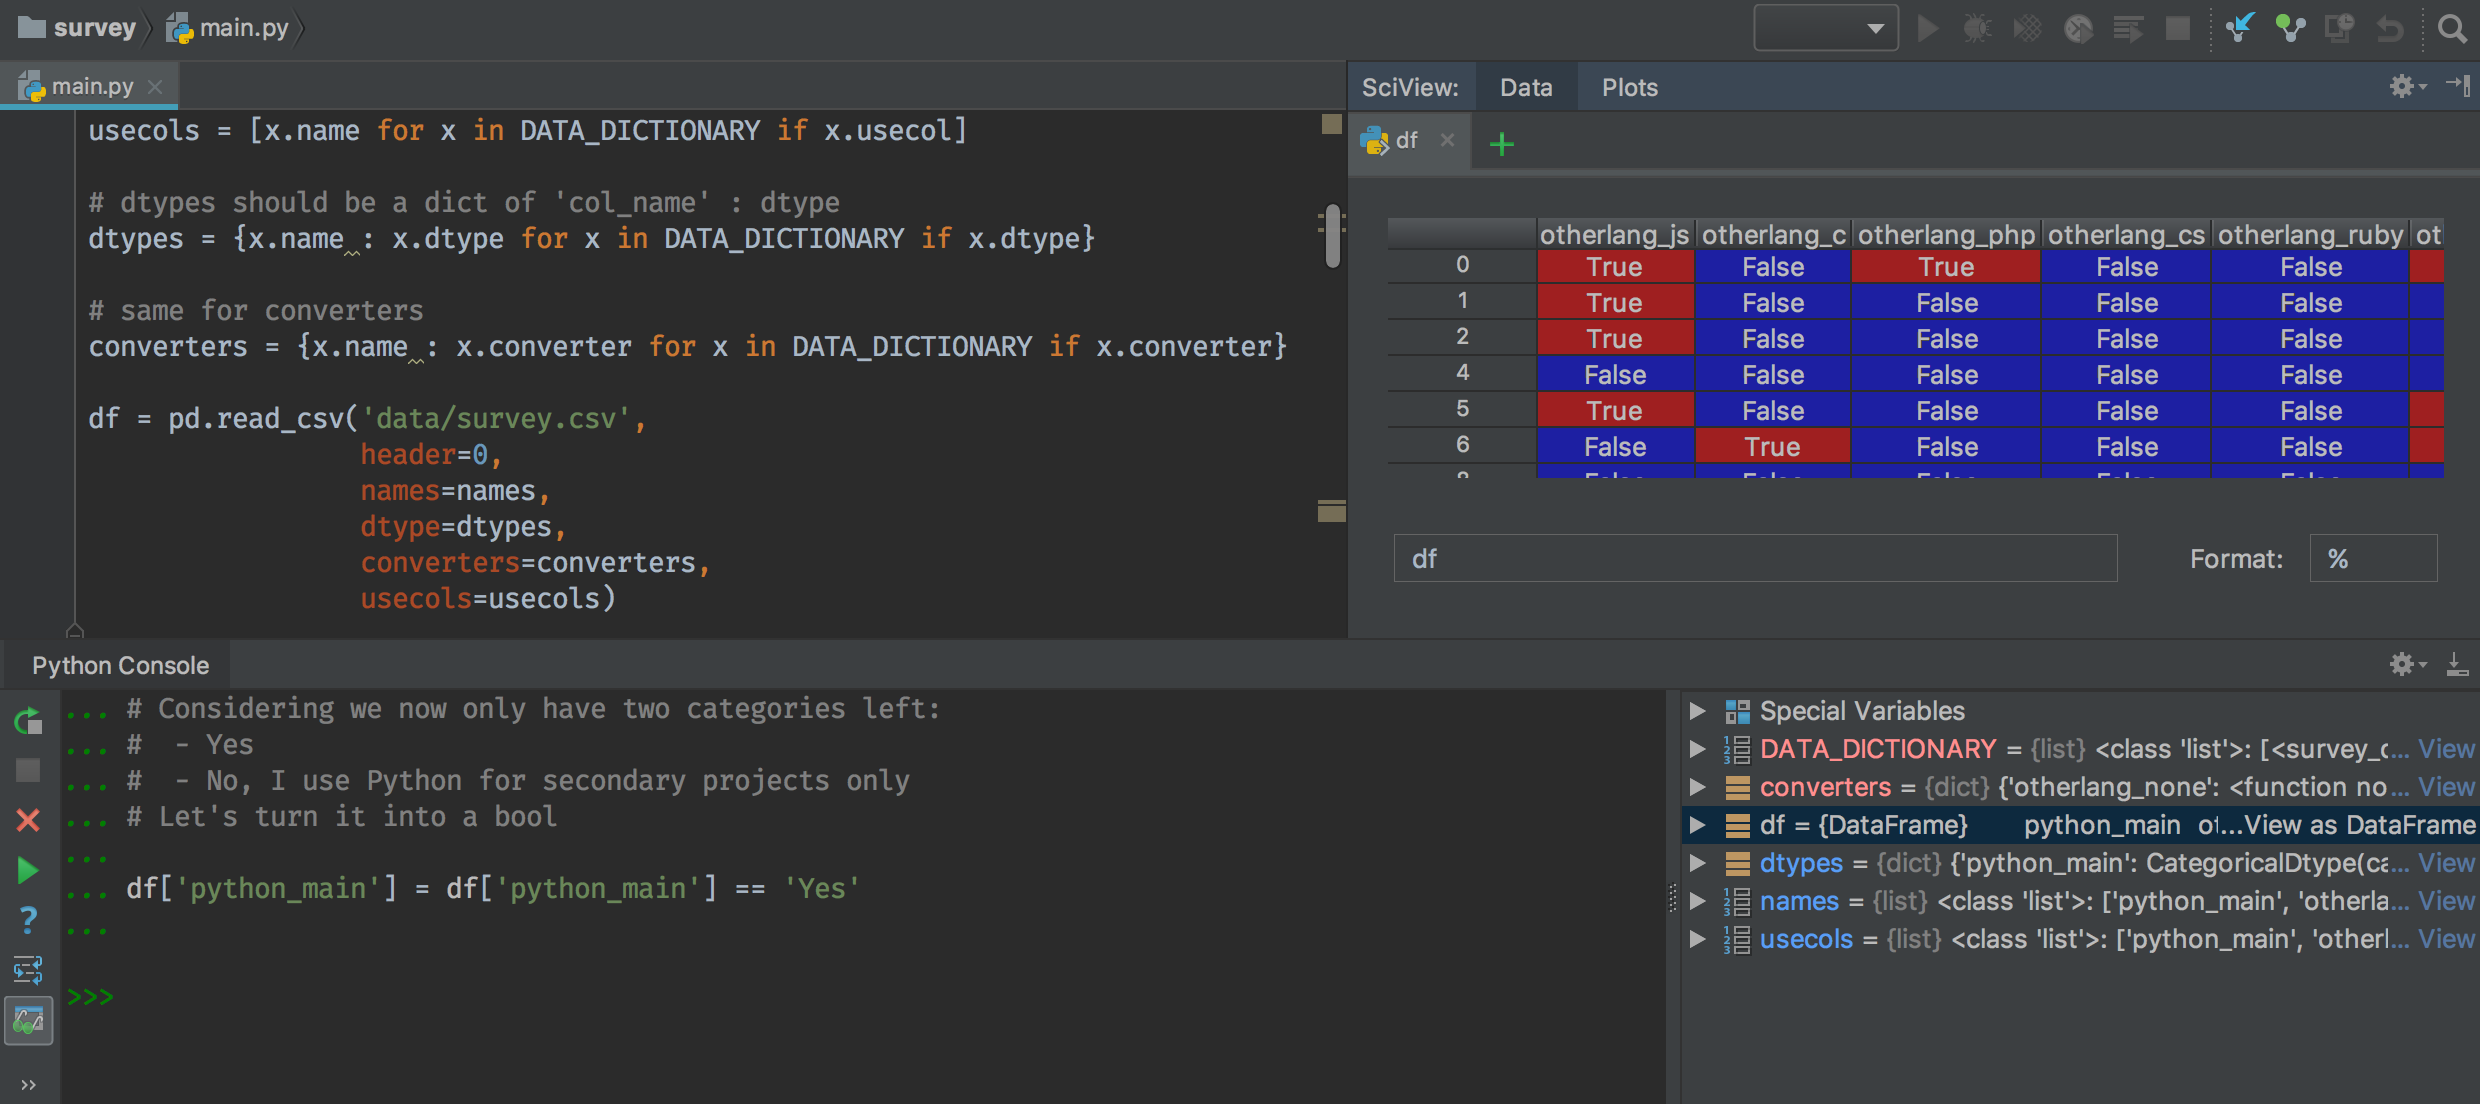 PyCharm 2020.2.3 Crack With License Key Generator Download